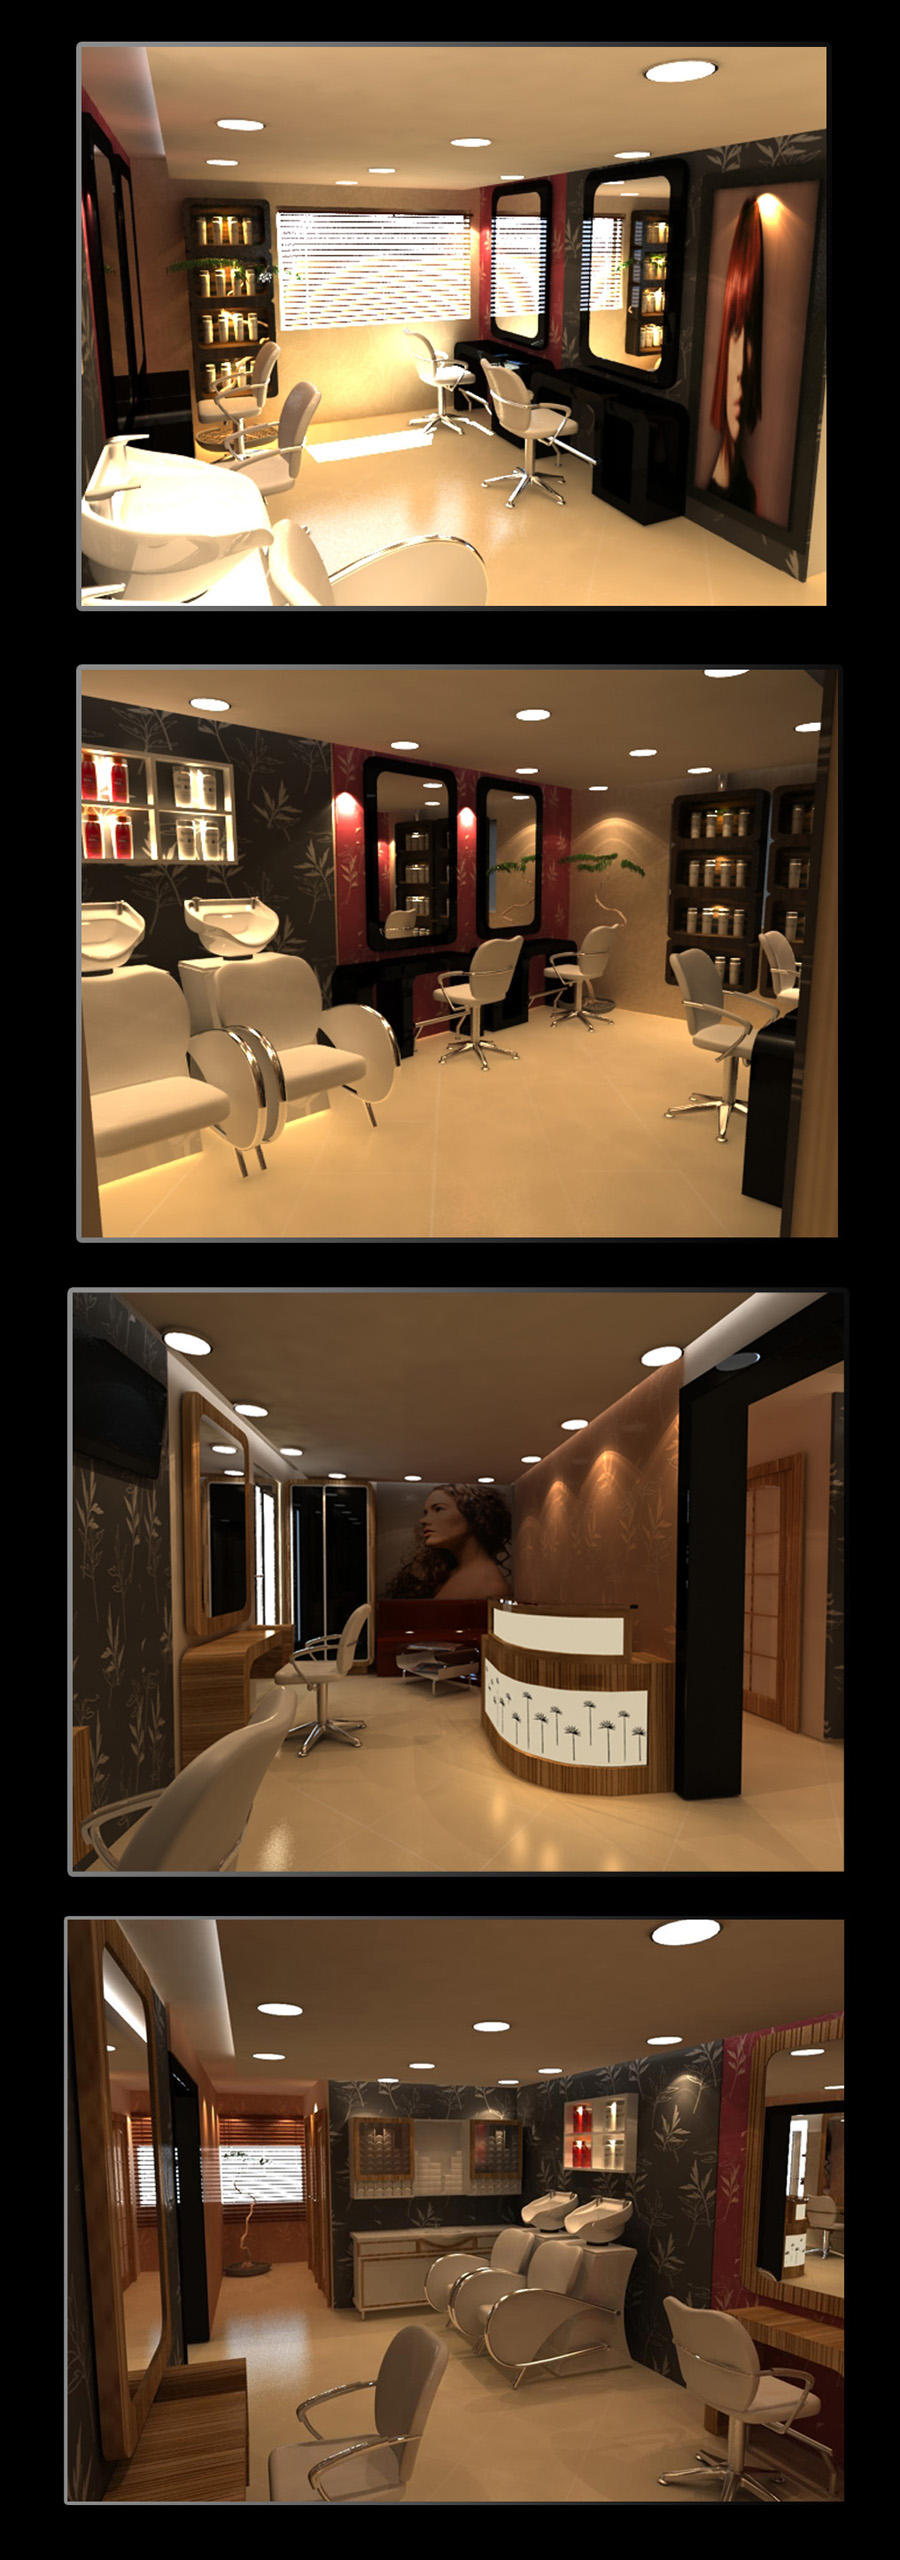 Hair Salons In : beauty salon floor plans,hair salon design,hair salon floor plans